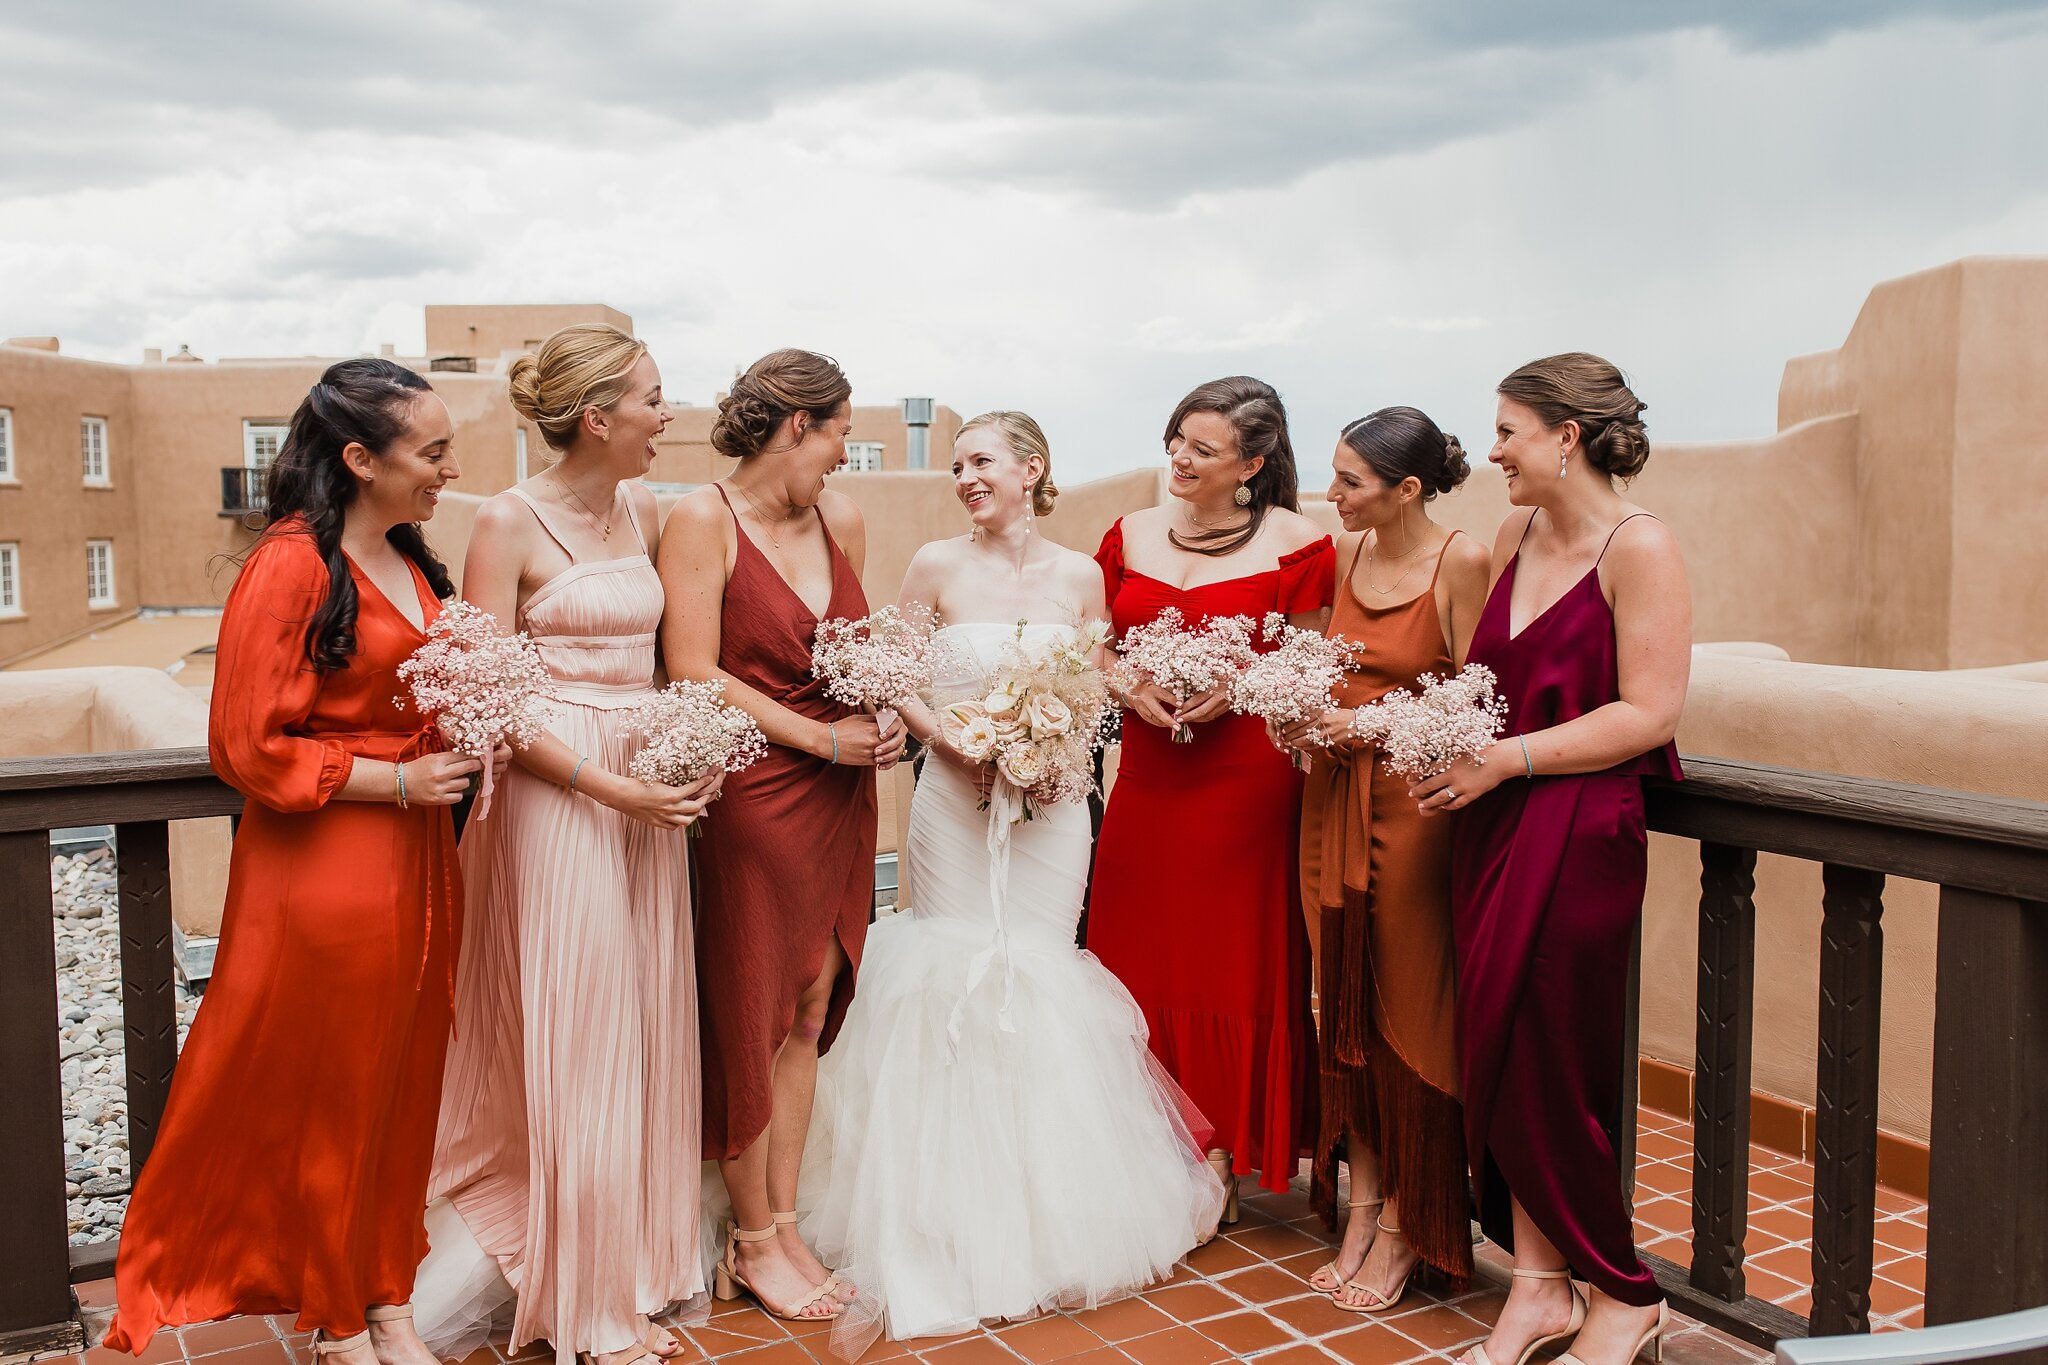 Alicia+lucia+photography+-+albuquerque+wedding+photographer+-+santa+fe+wedding+photography+-+new+mexico+wedding+photographer+-+new+mexico+wedding+-+la+fonda+wedding+-+la+fonda+on+the+plaza+-+santa+fe+wedding+-+brooklyn+bride_0019.jpg